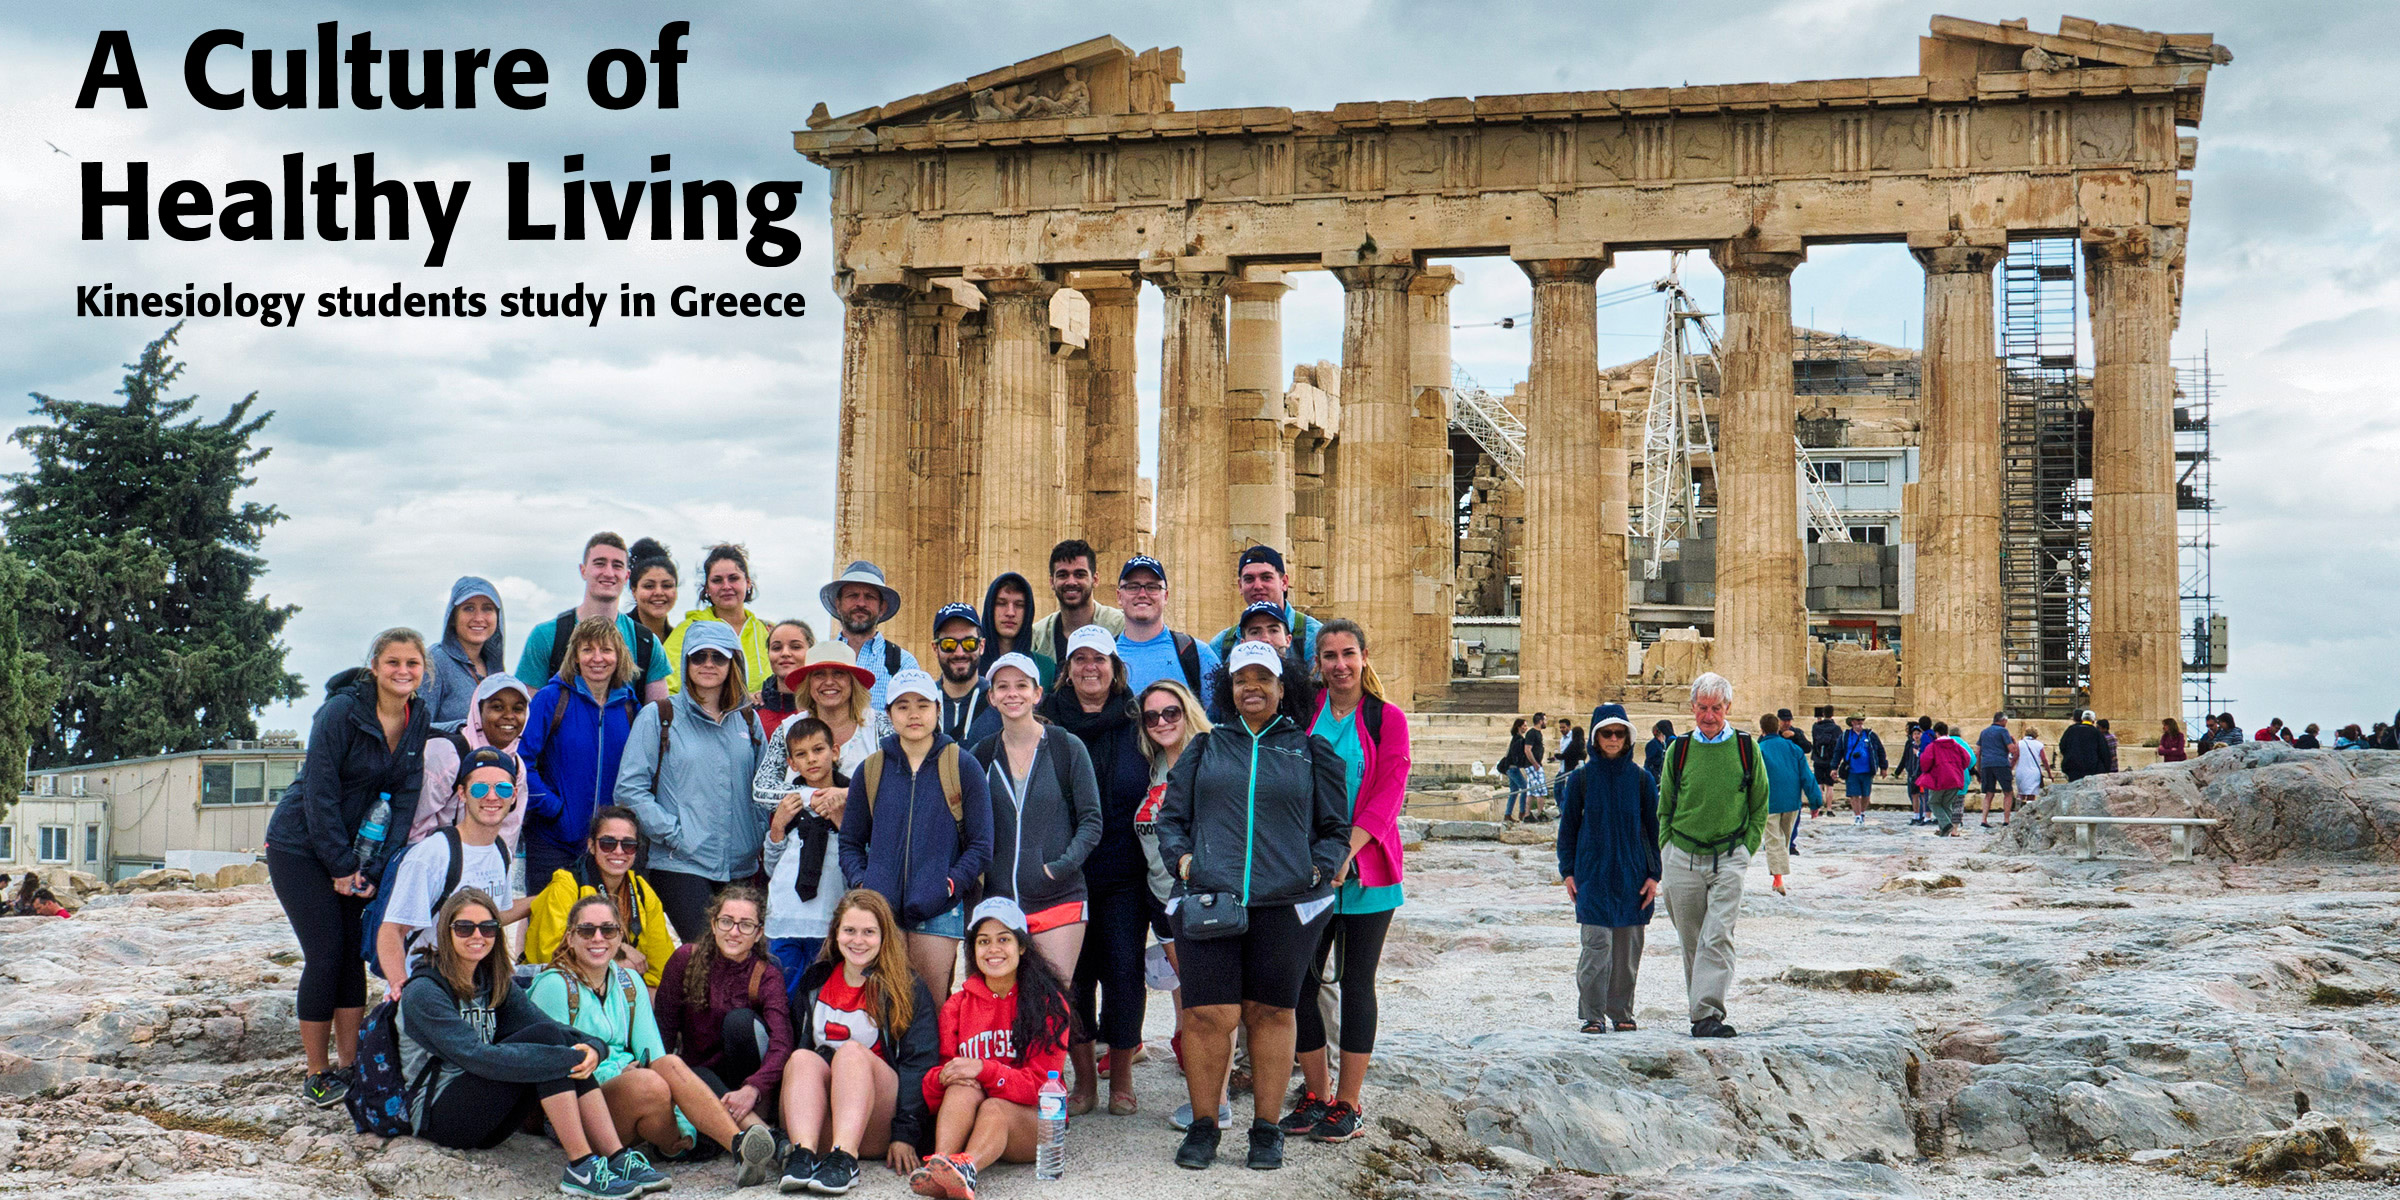 Kinesiology students study in Greece